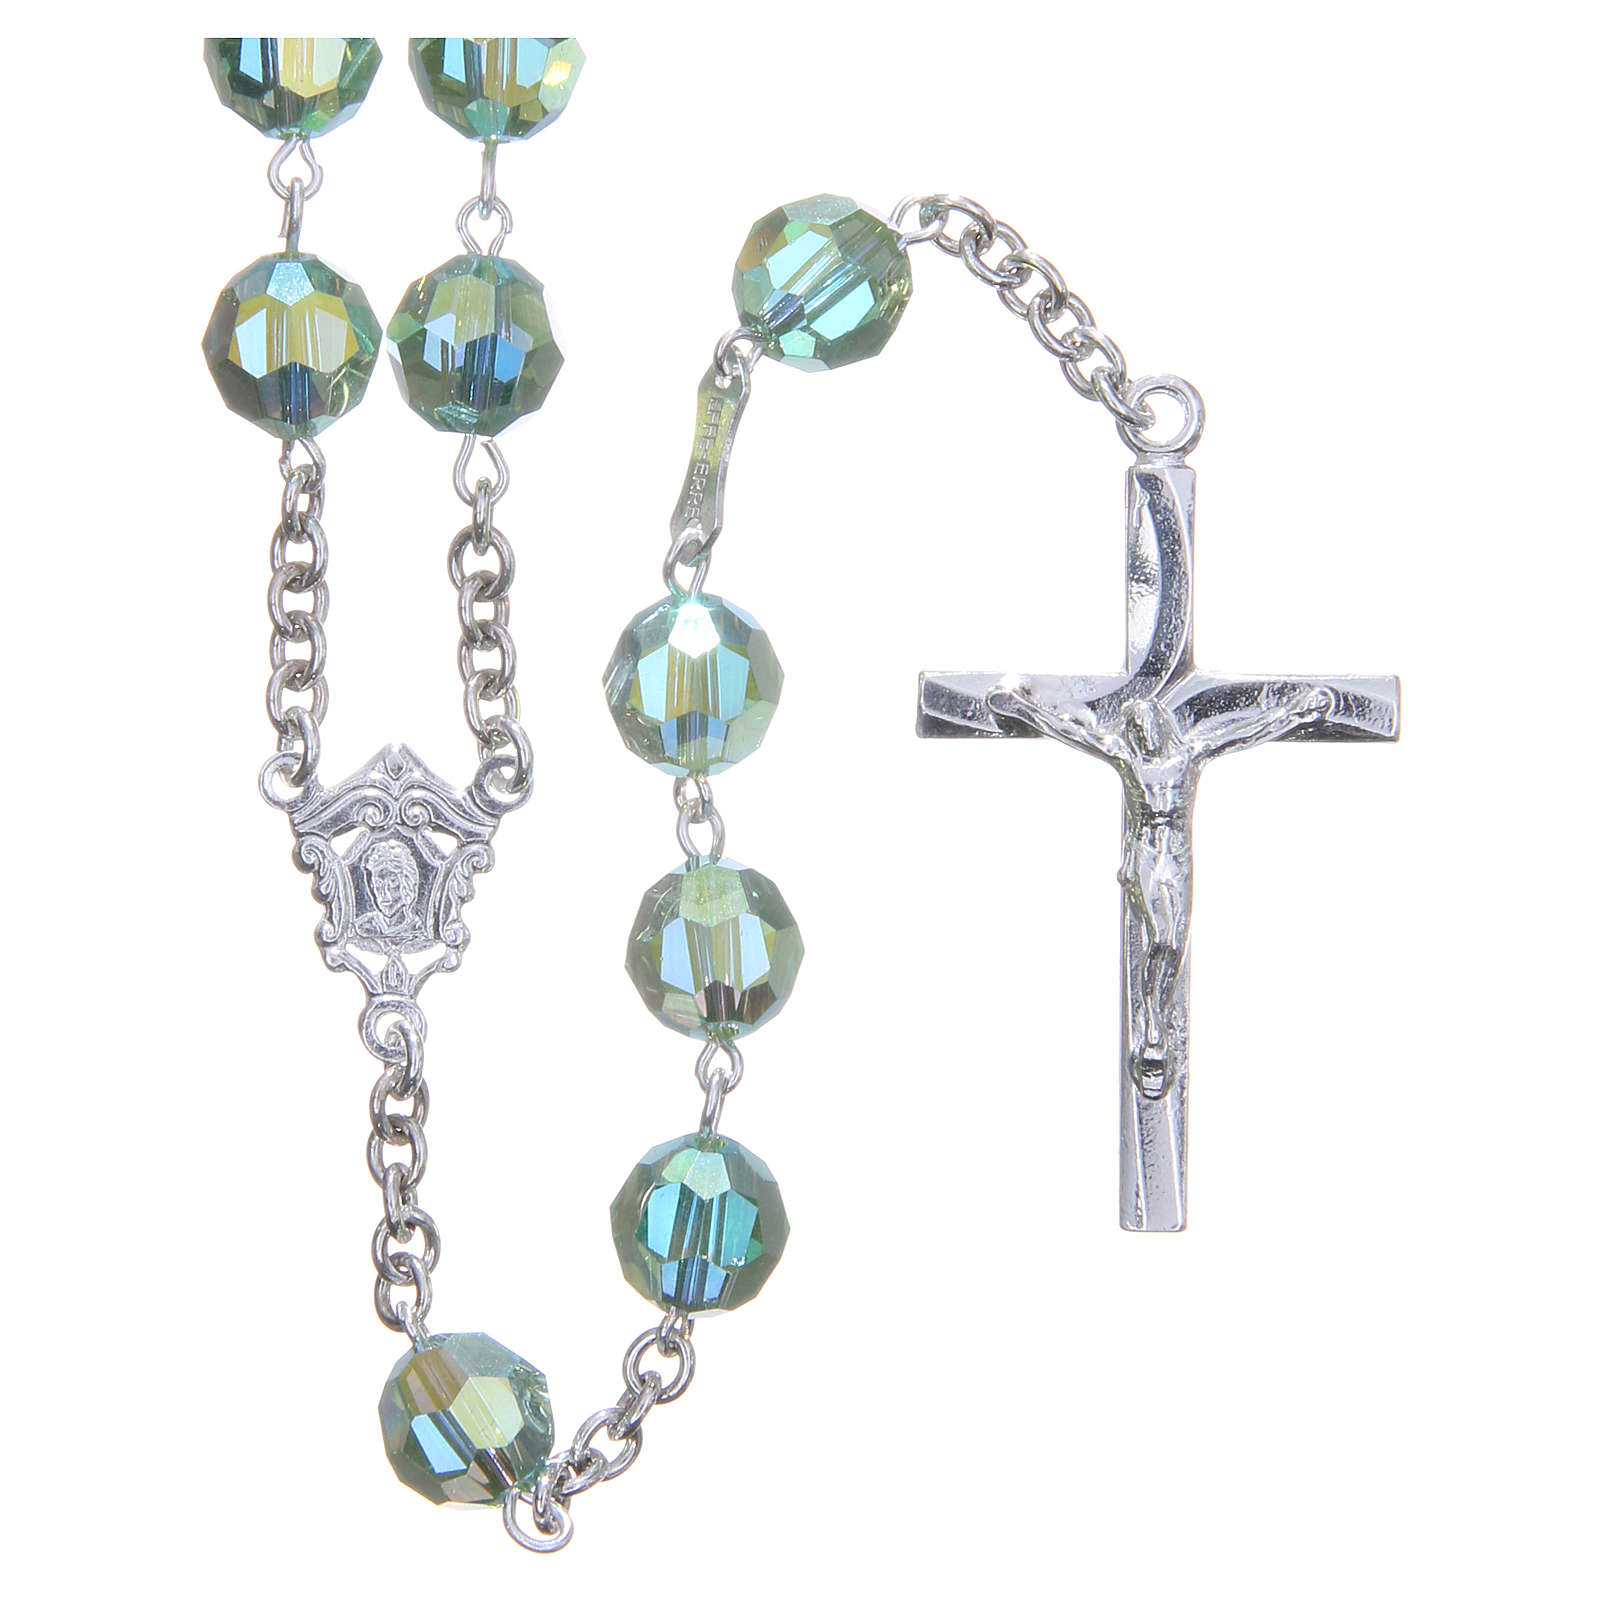 Rosary in 800 silver and green Swarowski crystal grains measuring 8mm 4